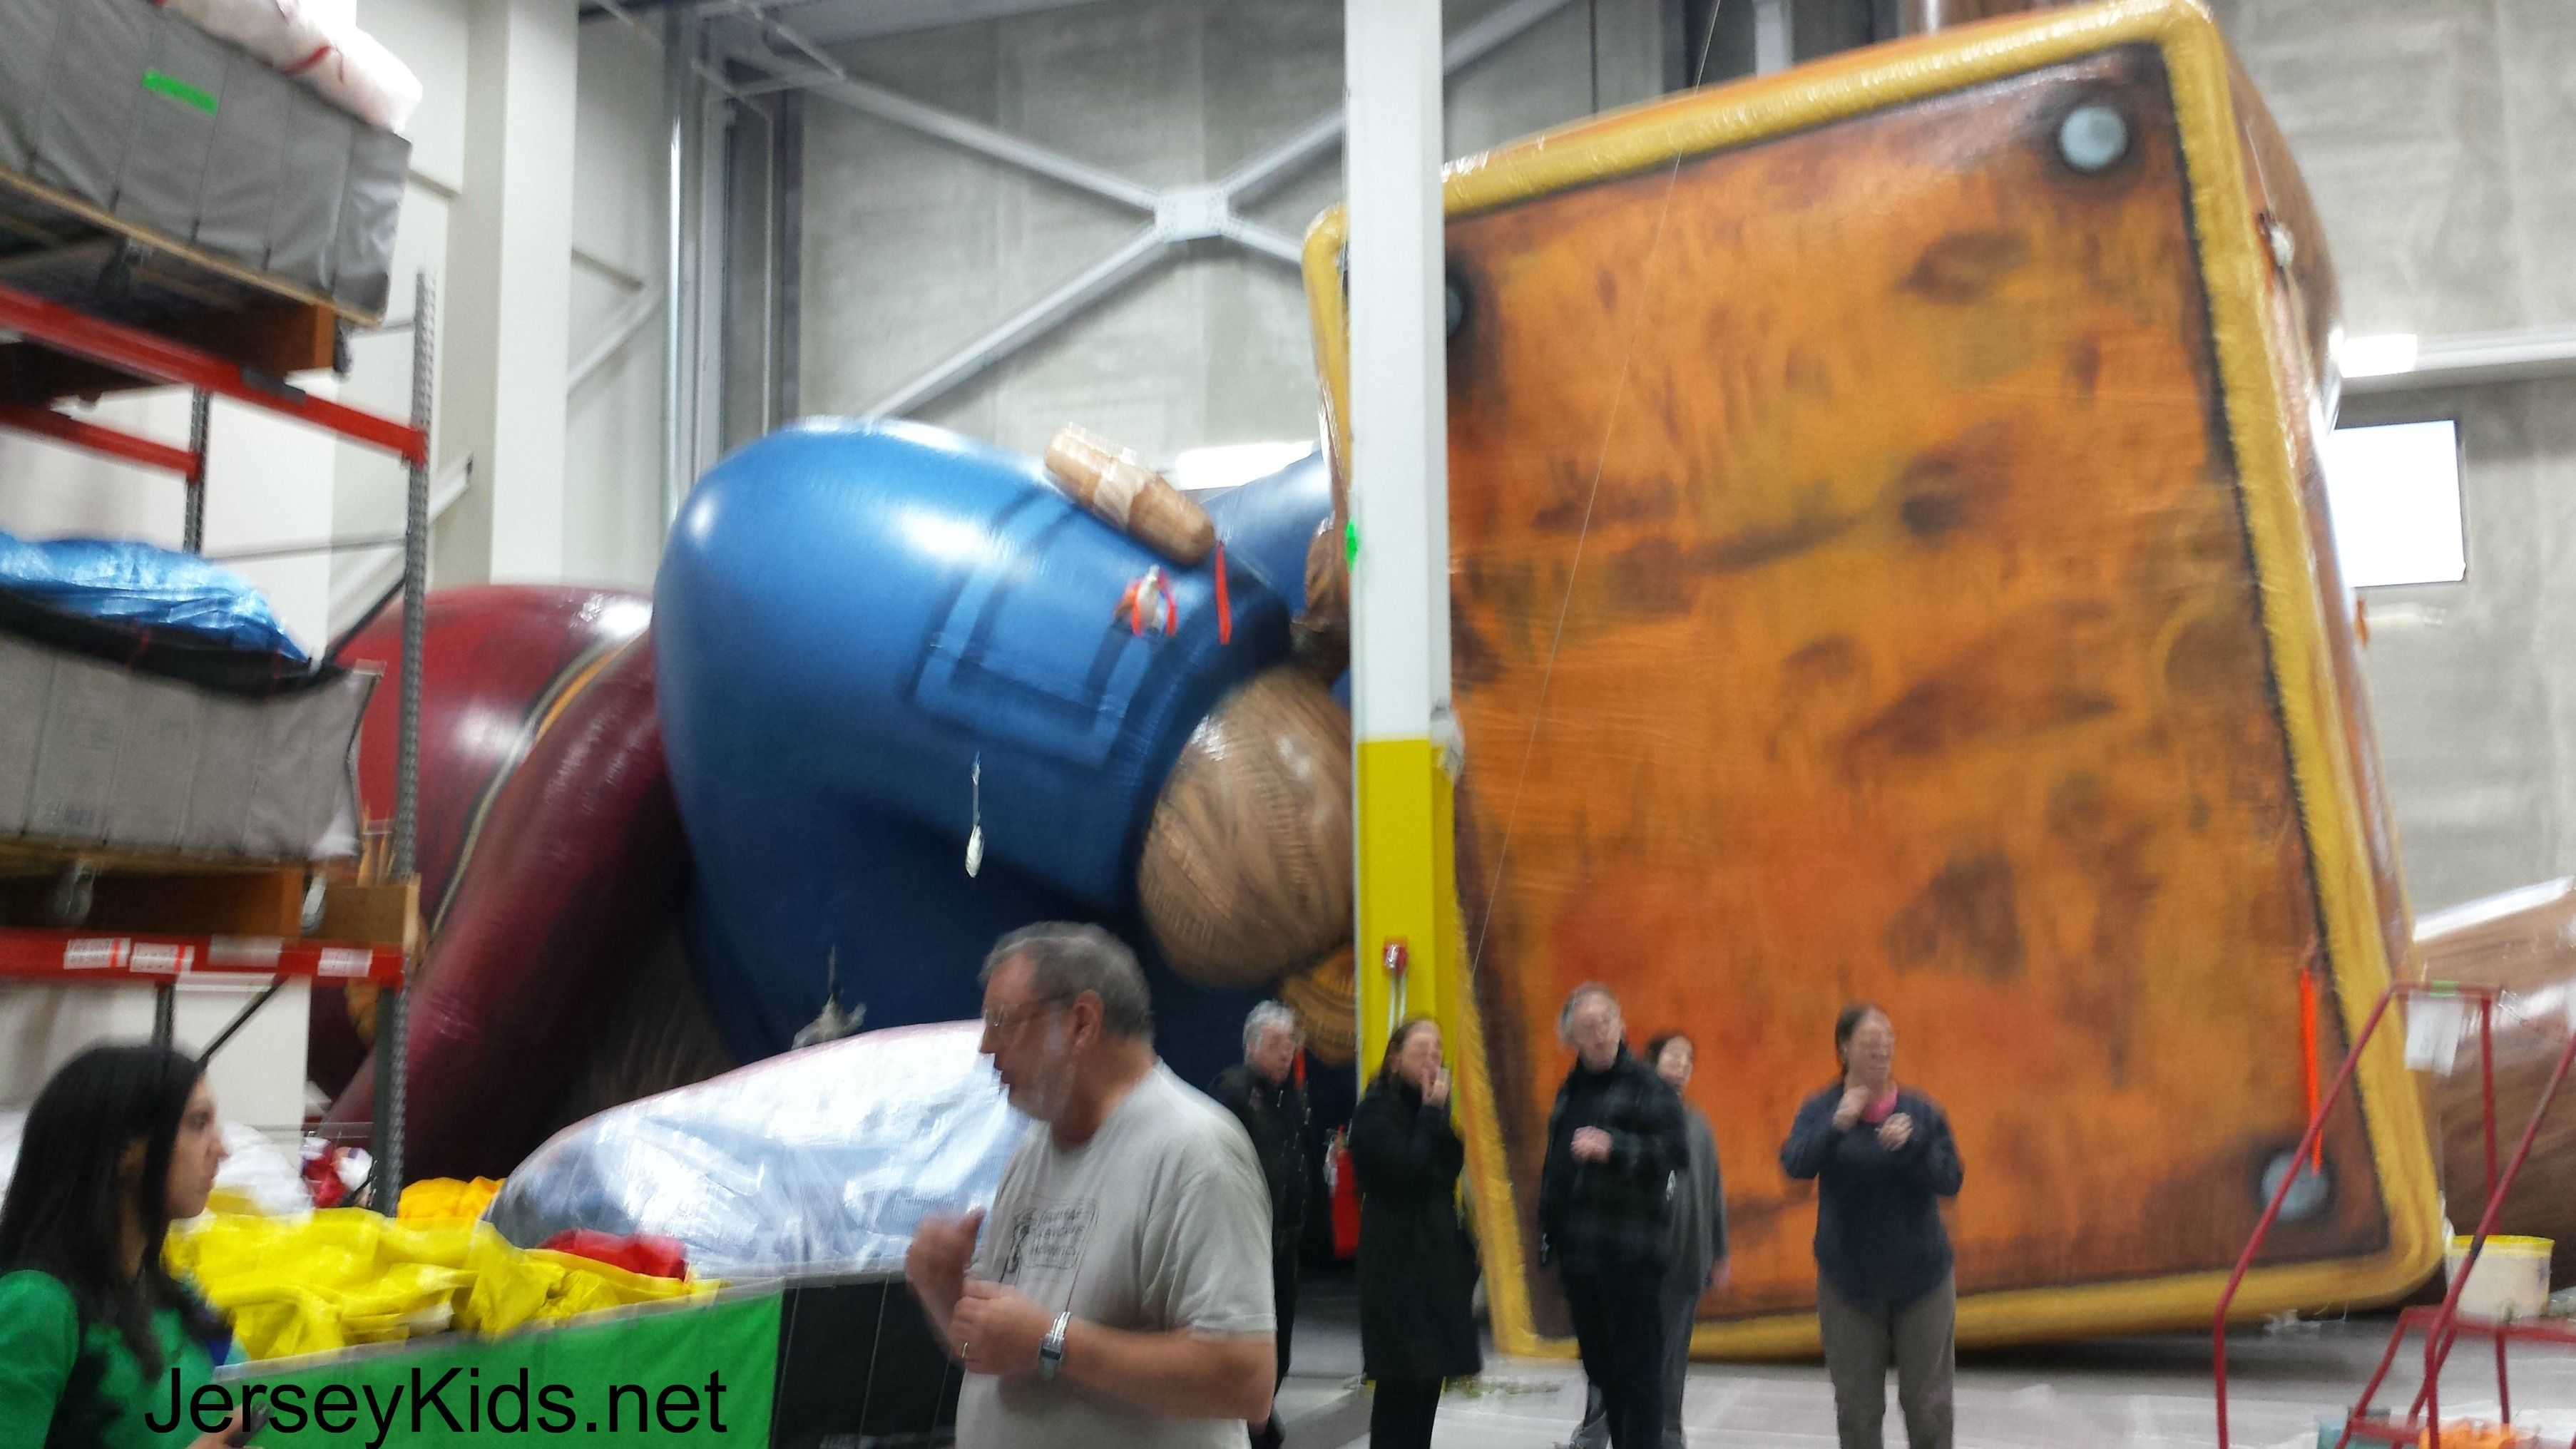 Paddington Fully Inflated Paddington Bear Is 600 Pounds And His Suitcase Thanksgiving Day Parade Macy S Thanksgiving Day Parade Macy S Thanksgiving Day Parade